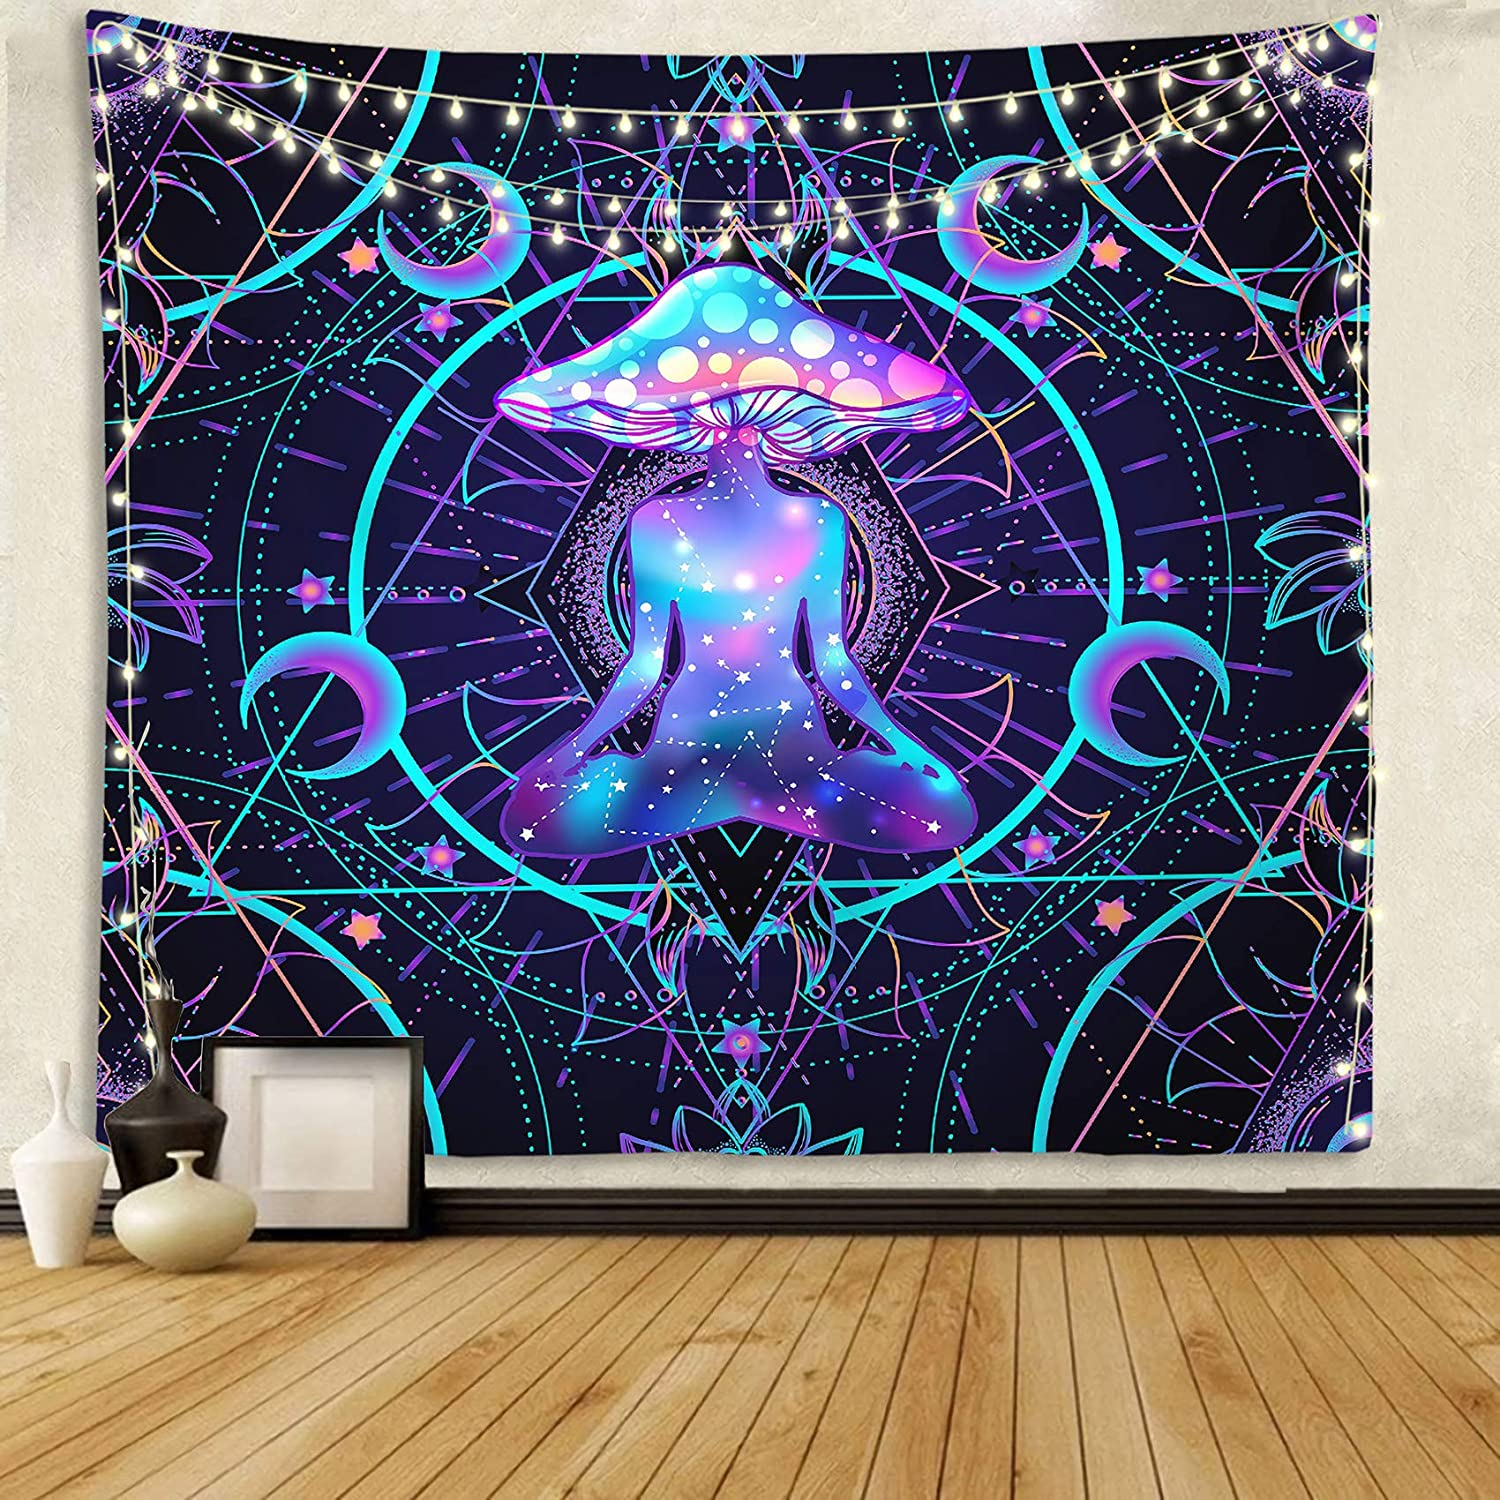 Trippy Tapestry Psychedelic Wall Hanging Mushroom Chakra Wall Blanket Decor for Home, Bedroom, Living Room and Dorm 59x59 Inches